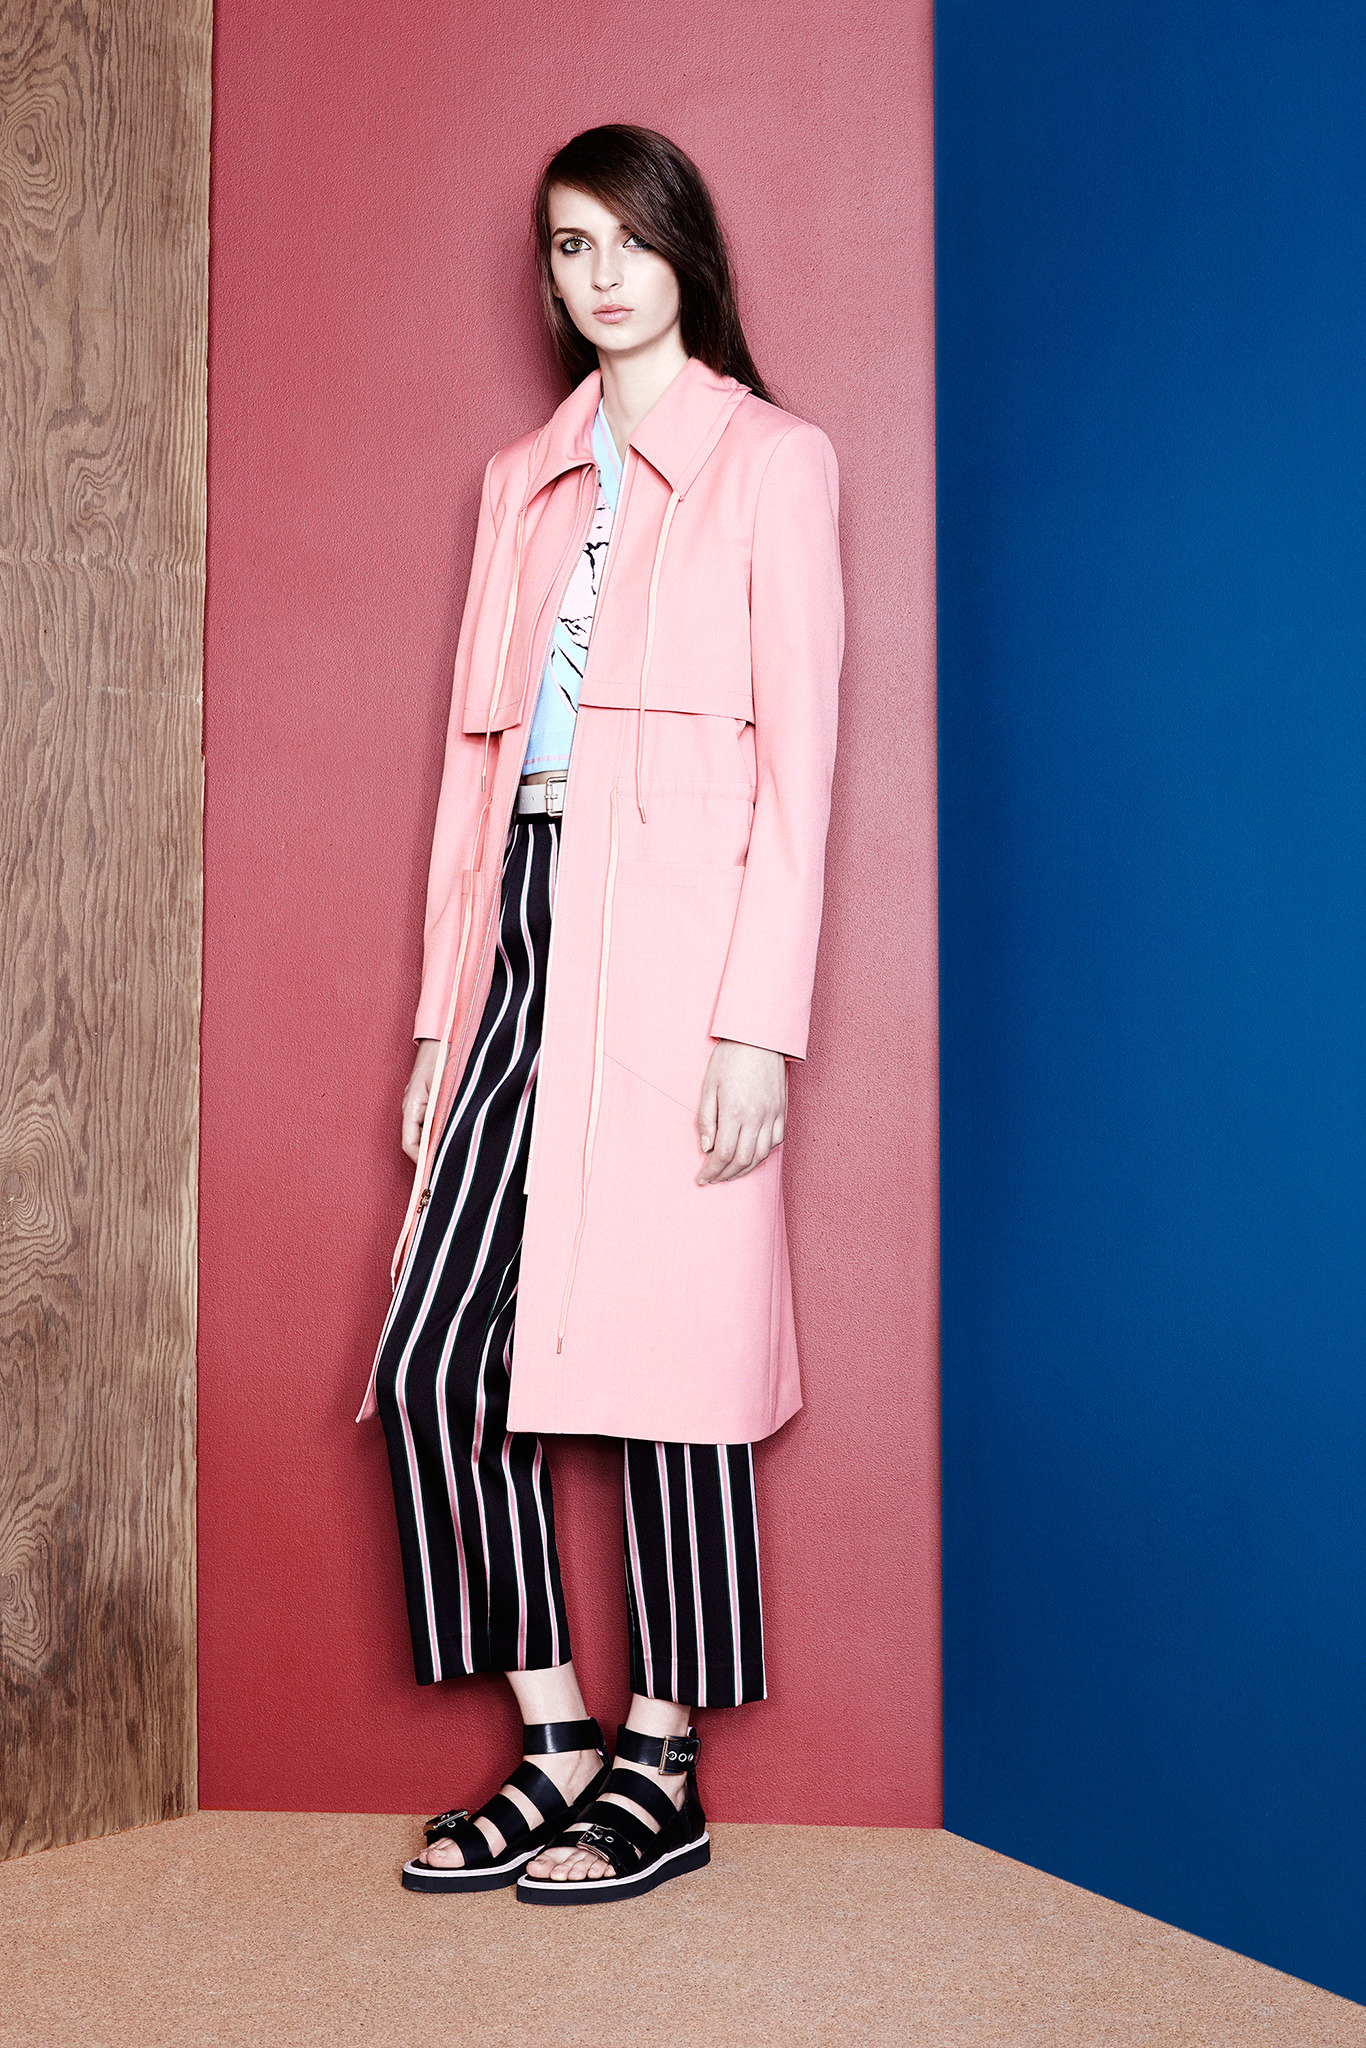 a suno-collection-runway-show-lookbook-the-impression-resort-2015-15 copy.jpg